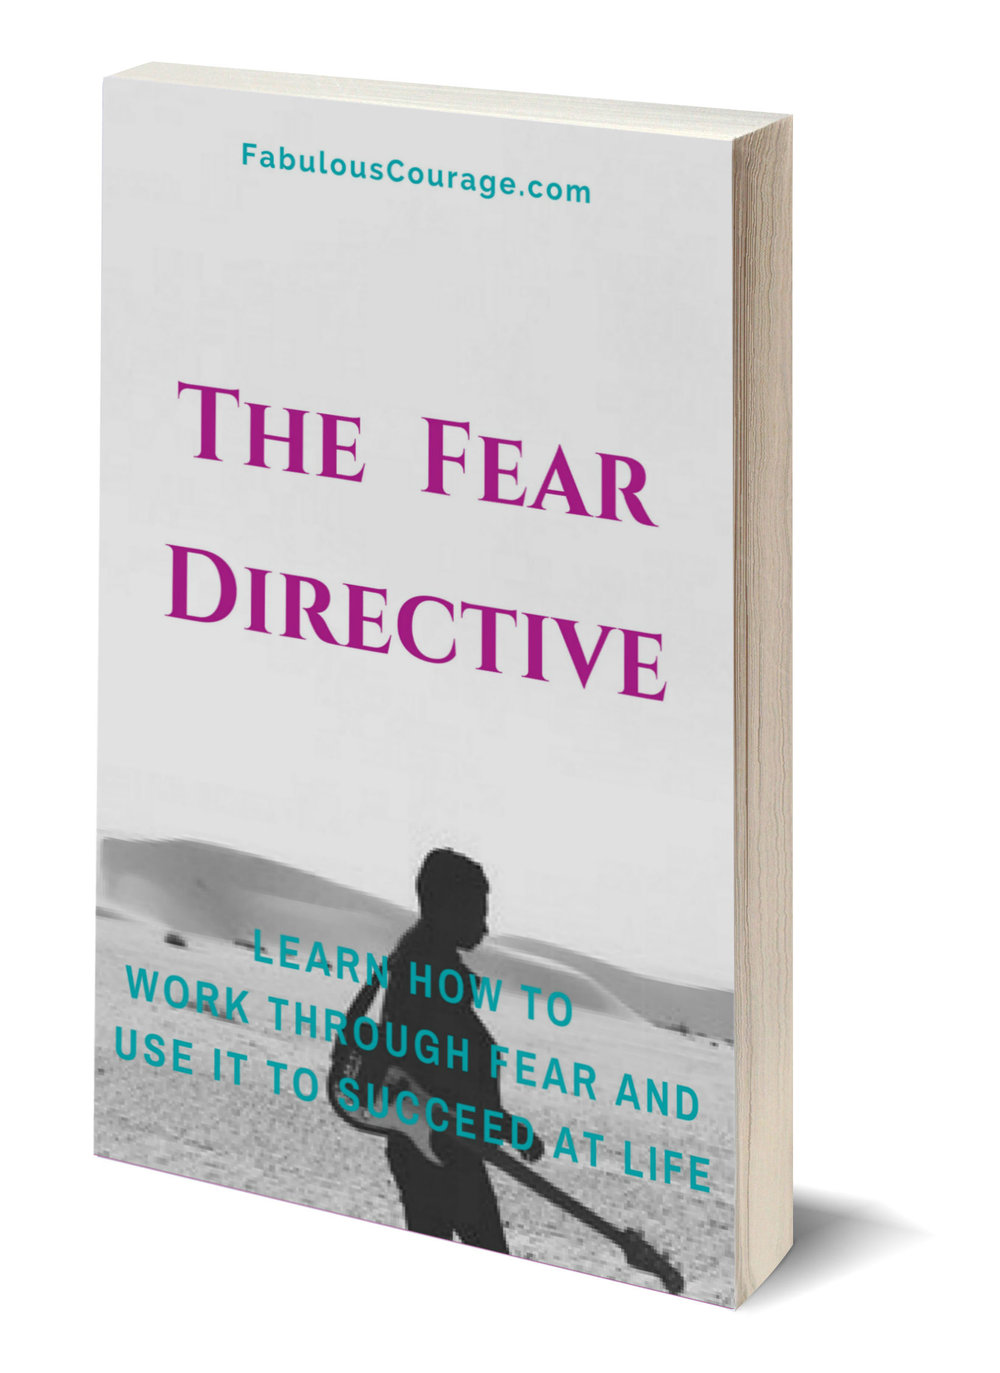 The Fear Directive